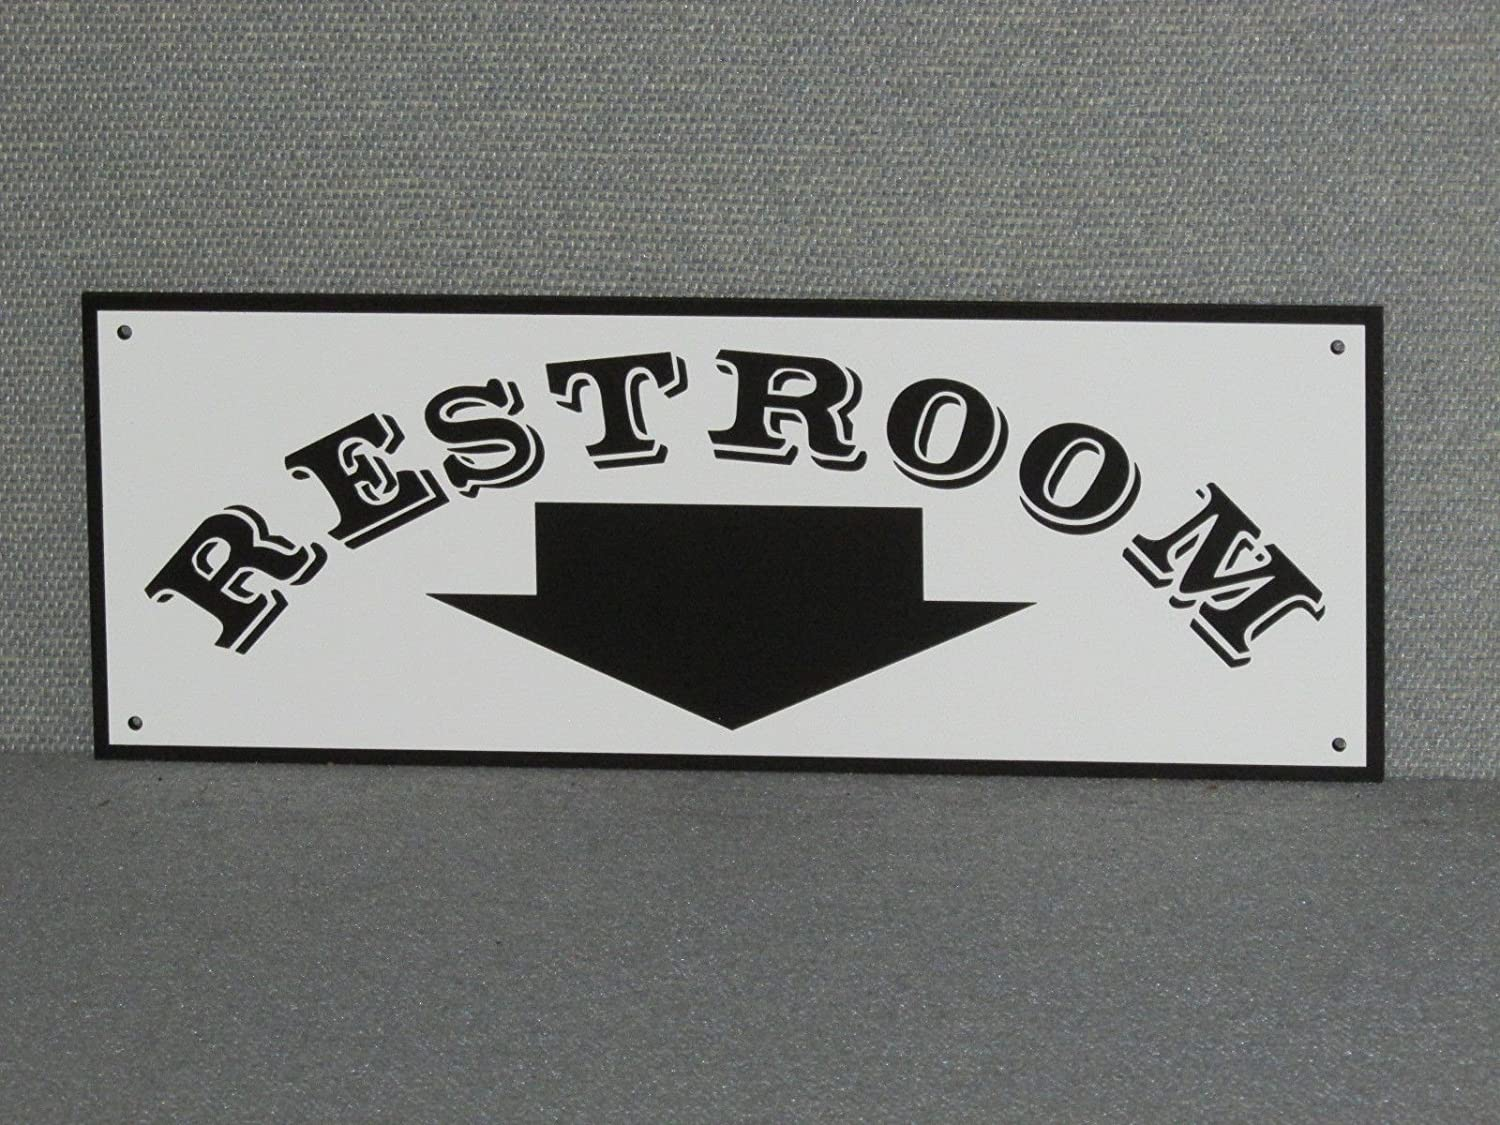 MotorHead Art RESTROOM SIGN WITH ARROW POINTING DOWN CUSTOM BLACK & WHITE WOODEN SIGN